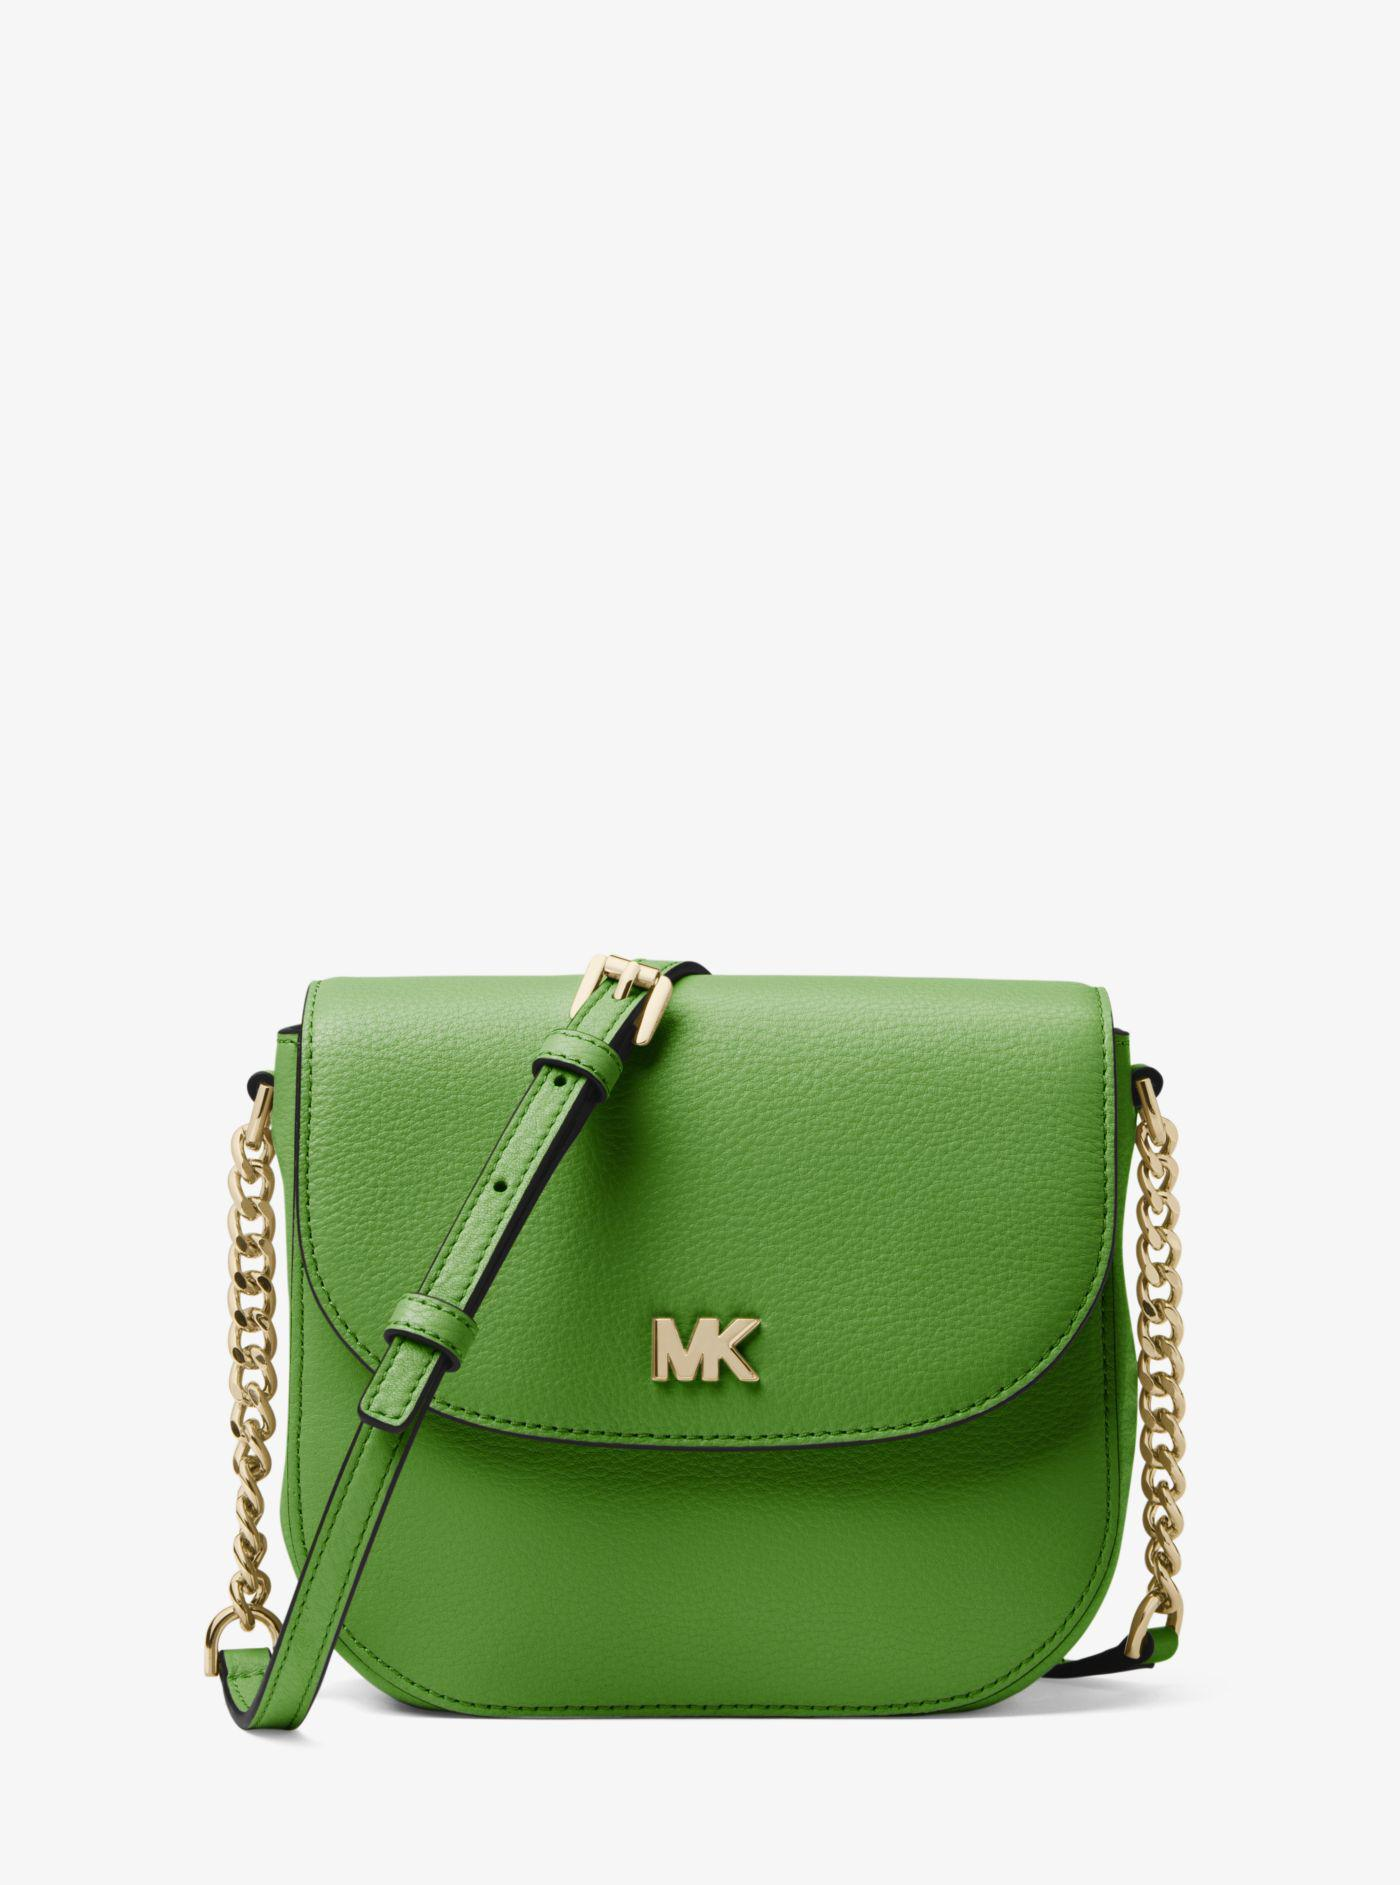 3d6f39d49f6e Michael Kors Mott Pebbled Leather Dome Crossbody in Green - Lyst